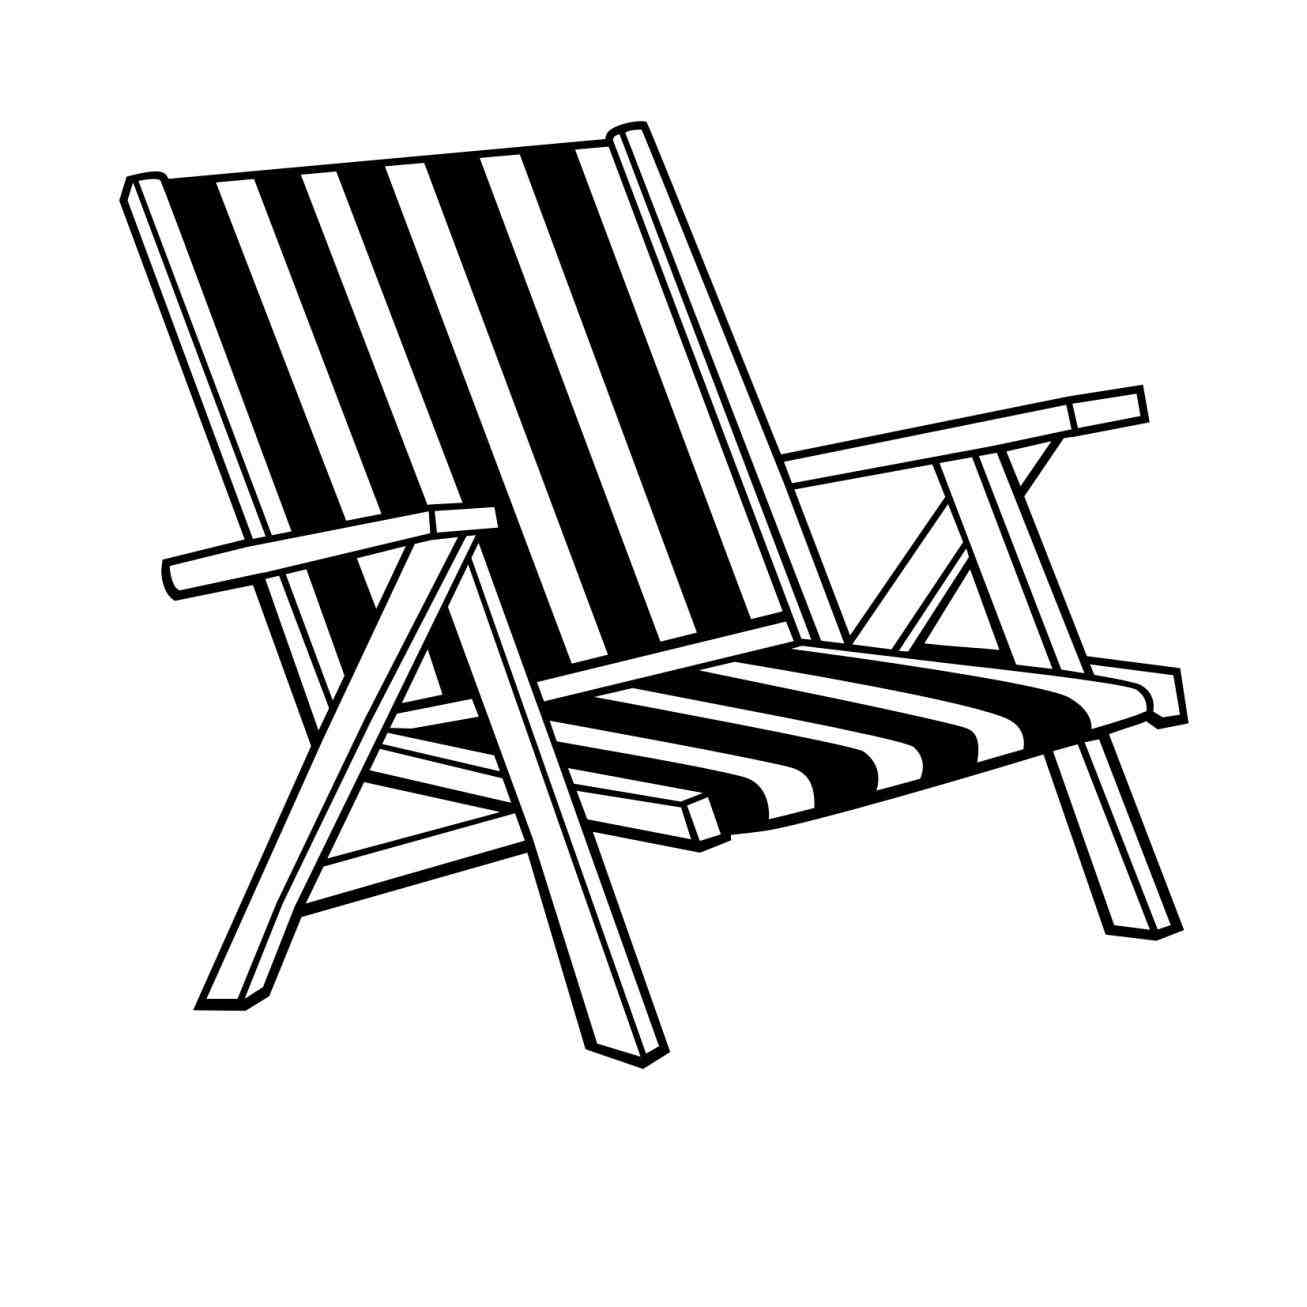 Black and white chair clipart jpg library Free Chair Clipart Black And White, Download Free Clip Art, Free ... jpg library